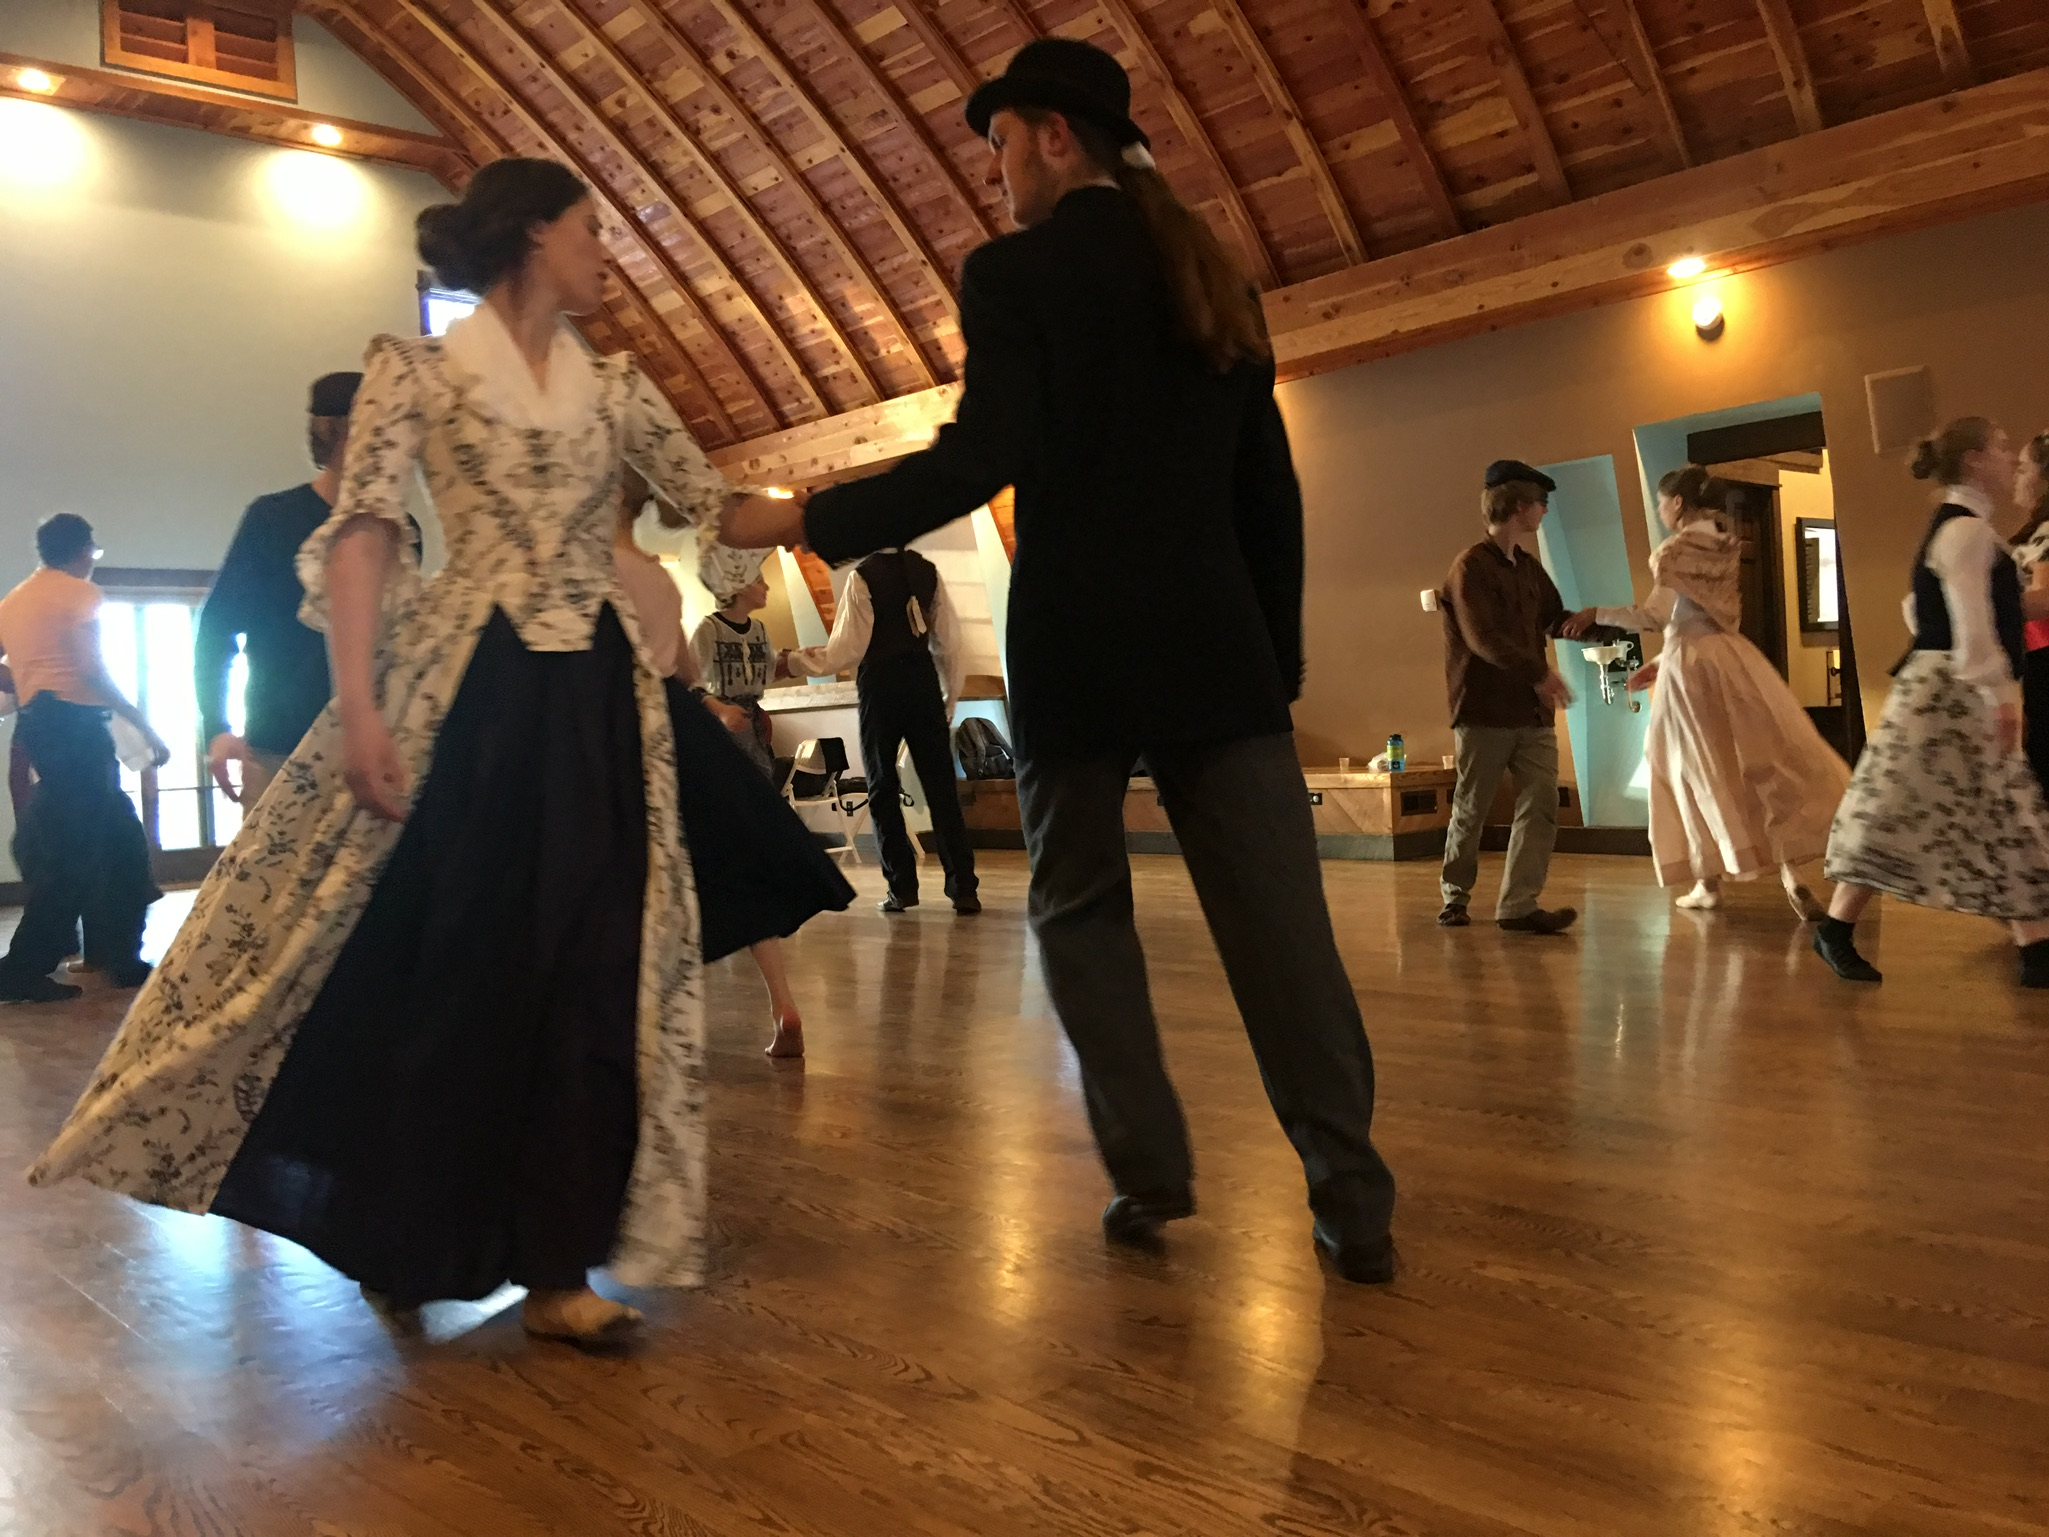 Ages 5 to 83 gathered - …during three days together to make music, attend concerts, and learn dances such as the Minuet - all accompanied by skilled musicians on such rare instruments as the hurdy-gurdy and the serpent horn.